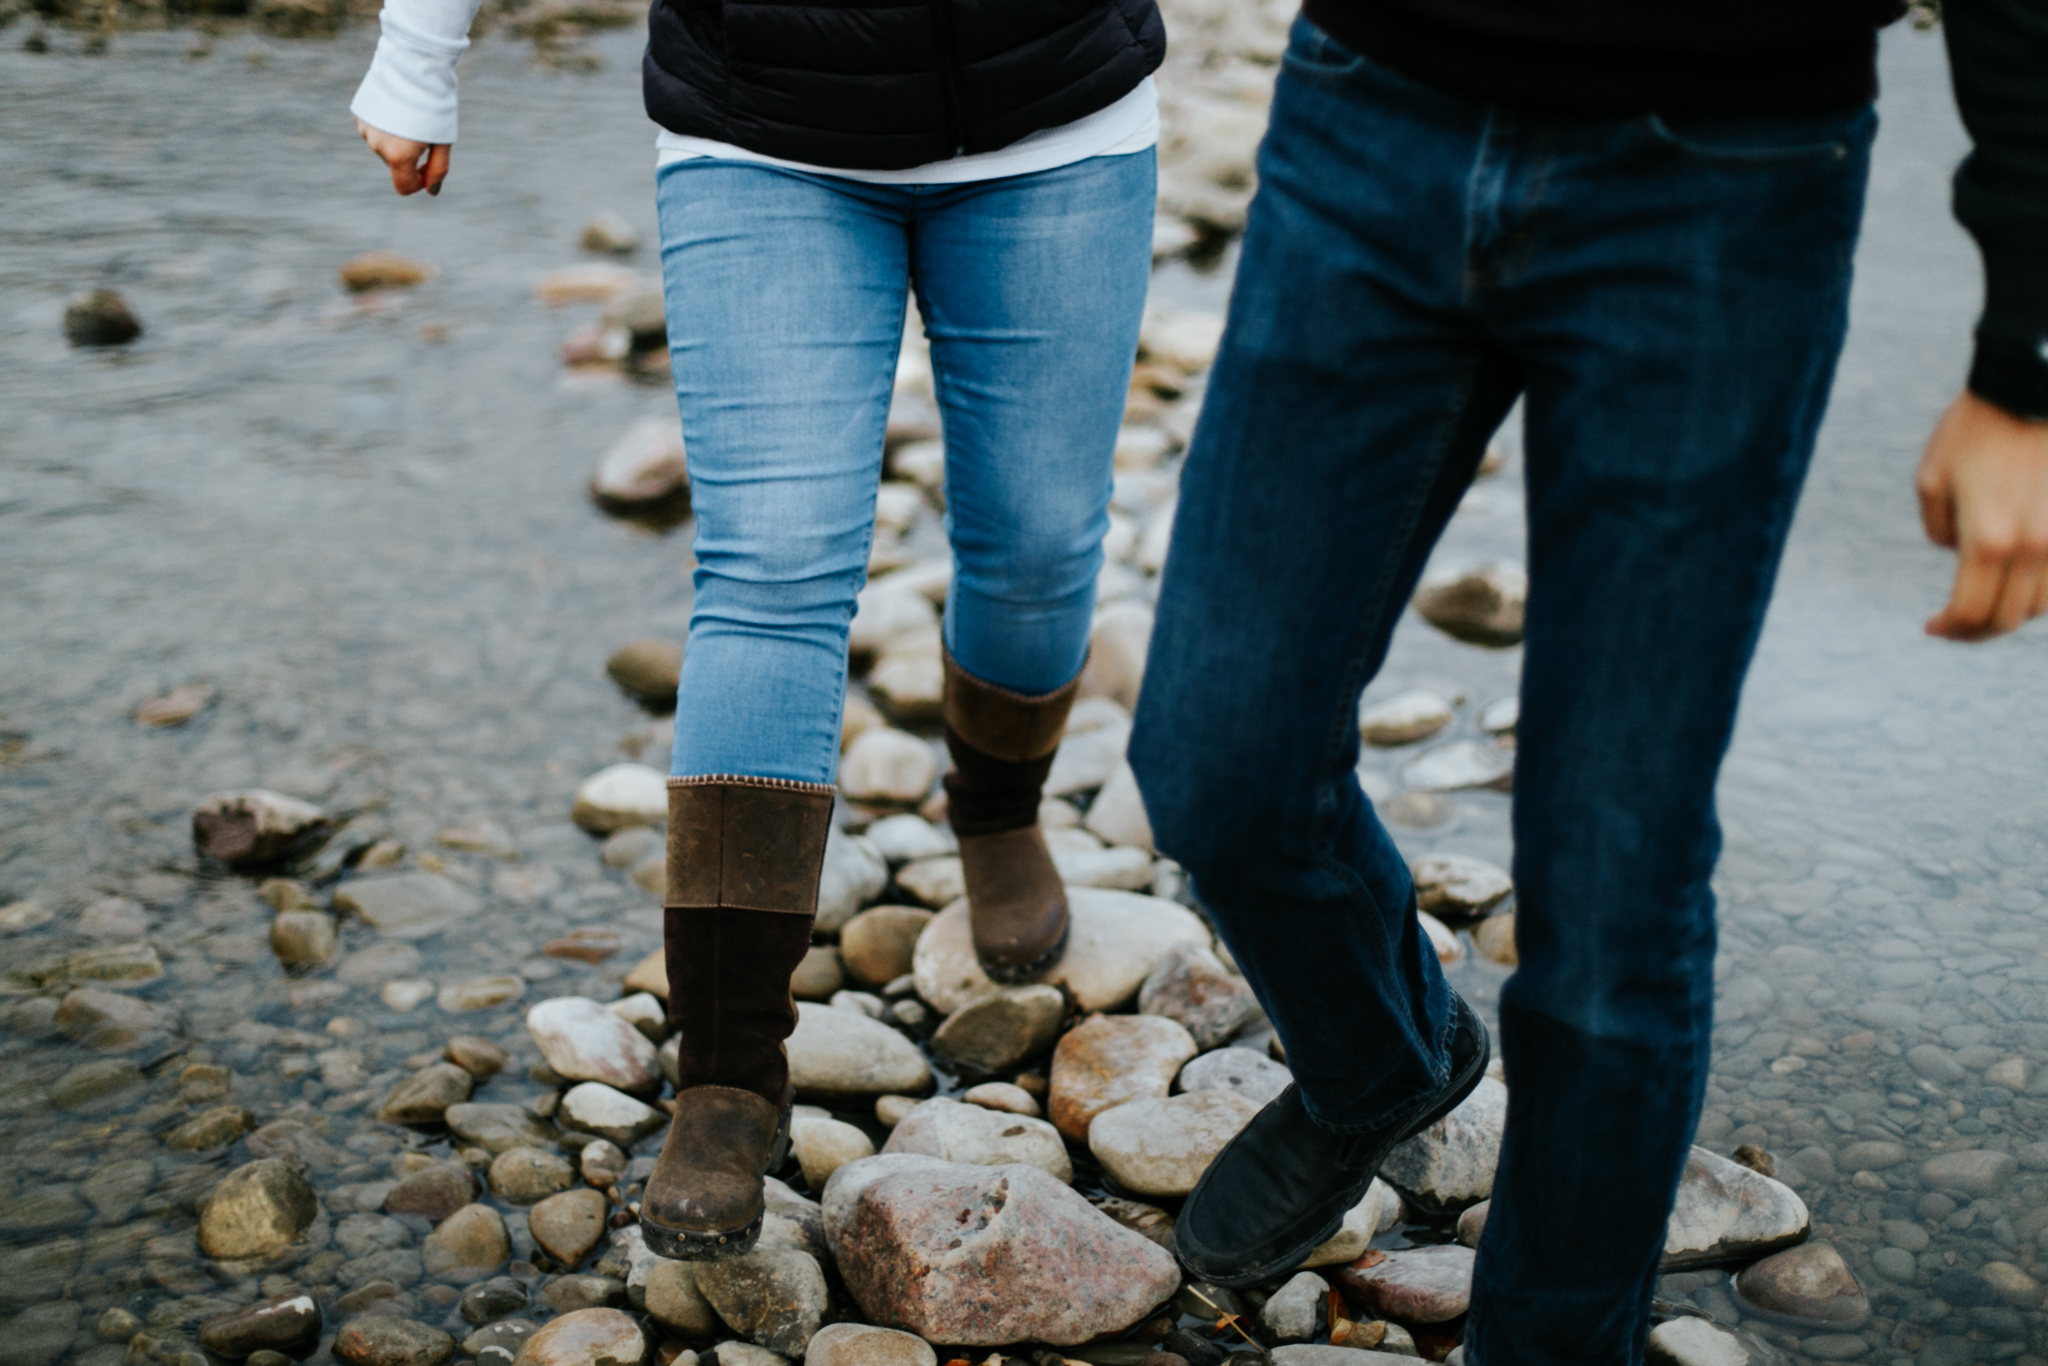 lethbridge-photographer-love-and-be-loved-photography-indian-battle-park-engagement-mike-carmel-photo-image-picture-47.jpg